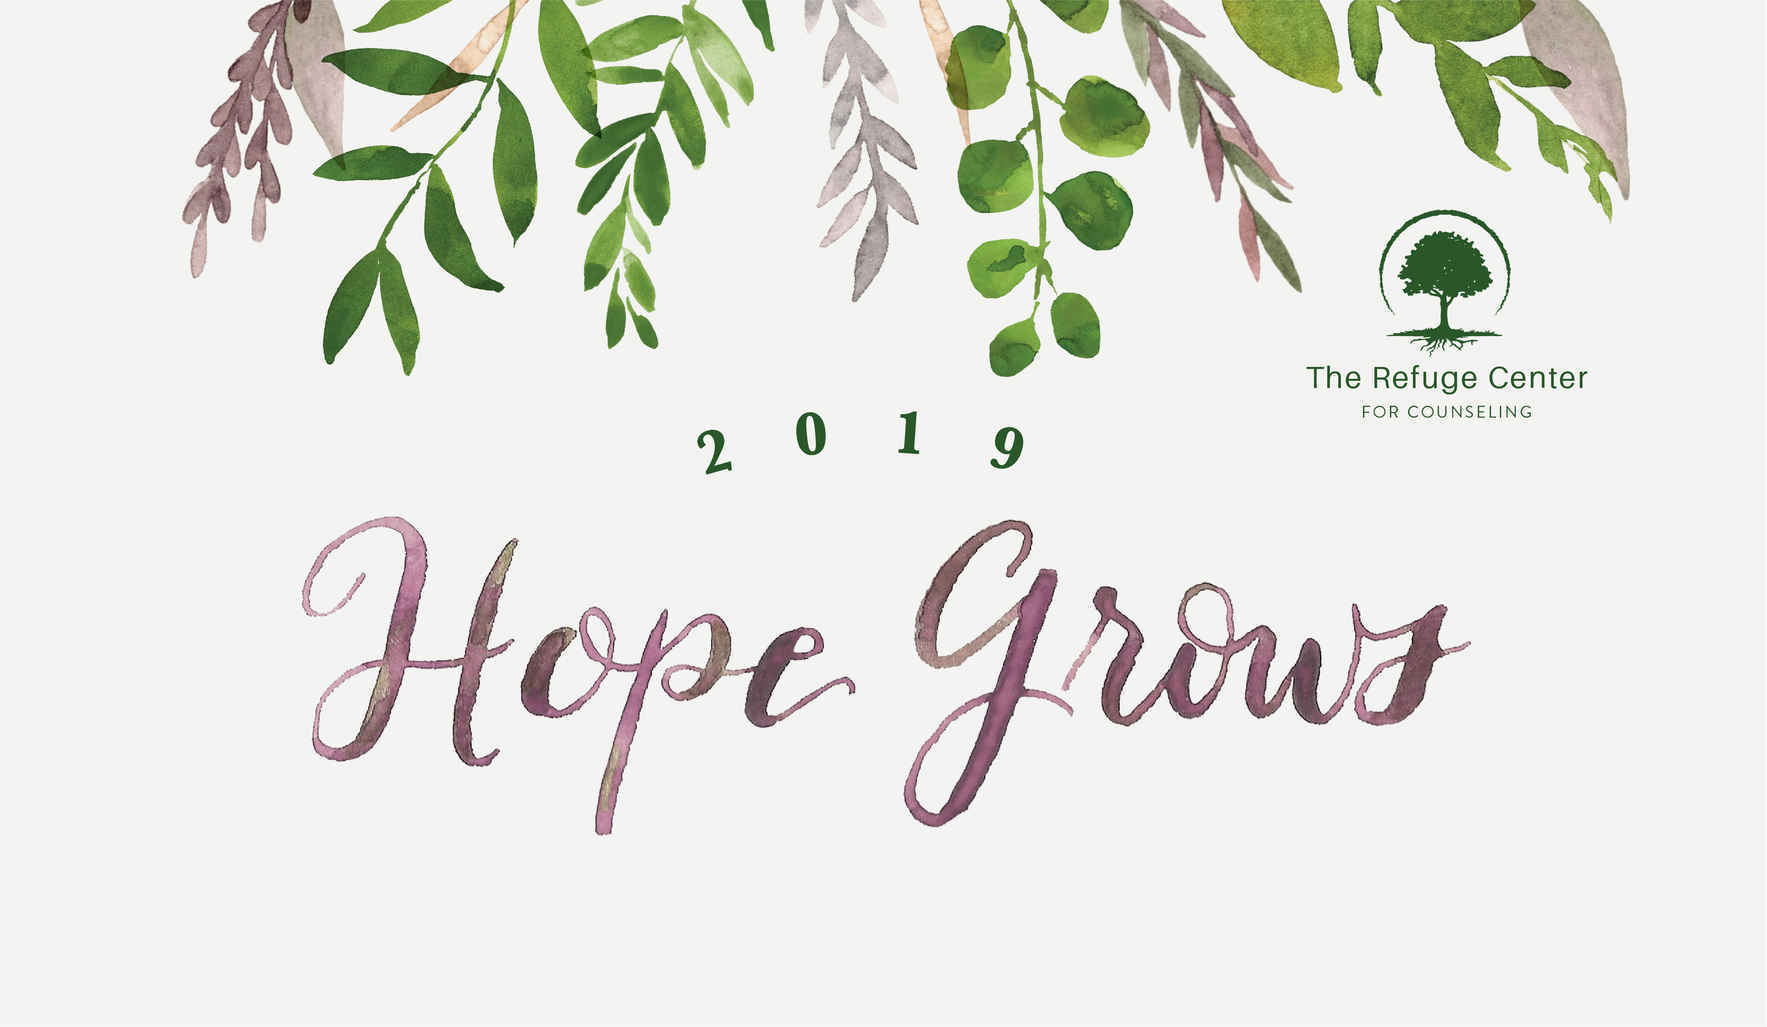 Hope Grows at The Refuge Center image